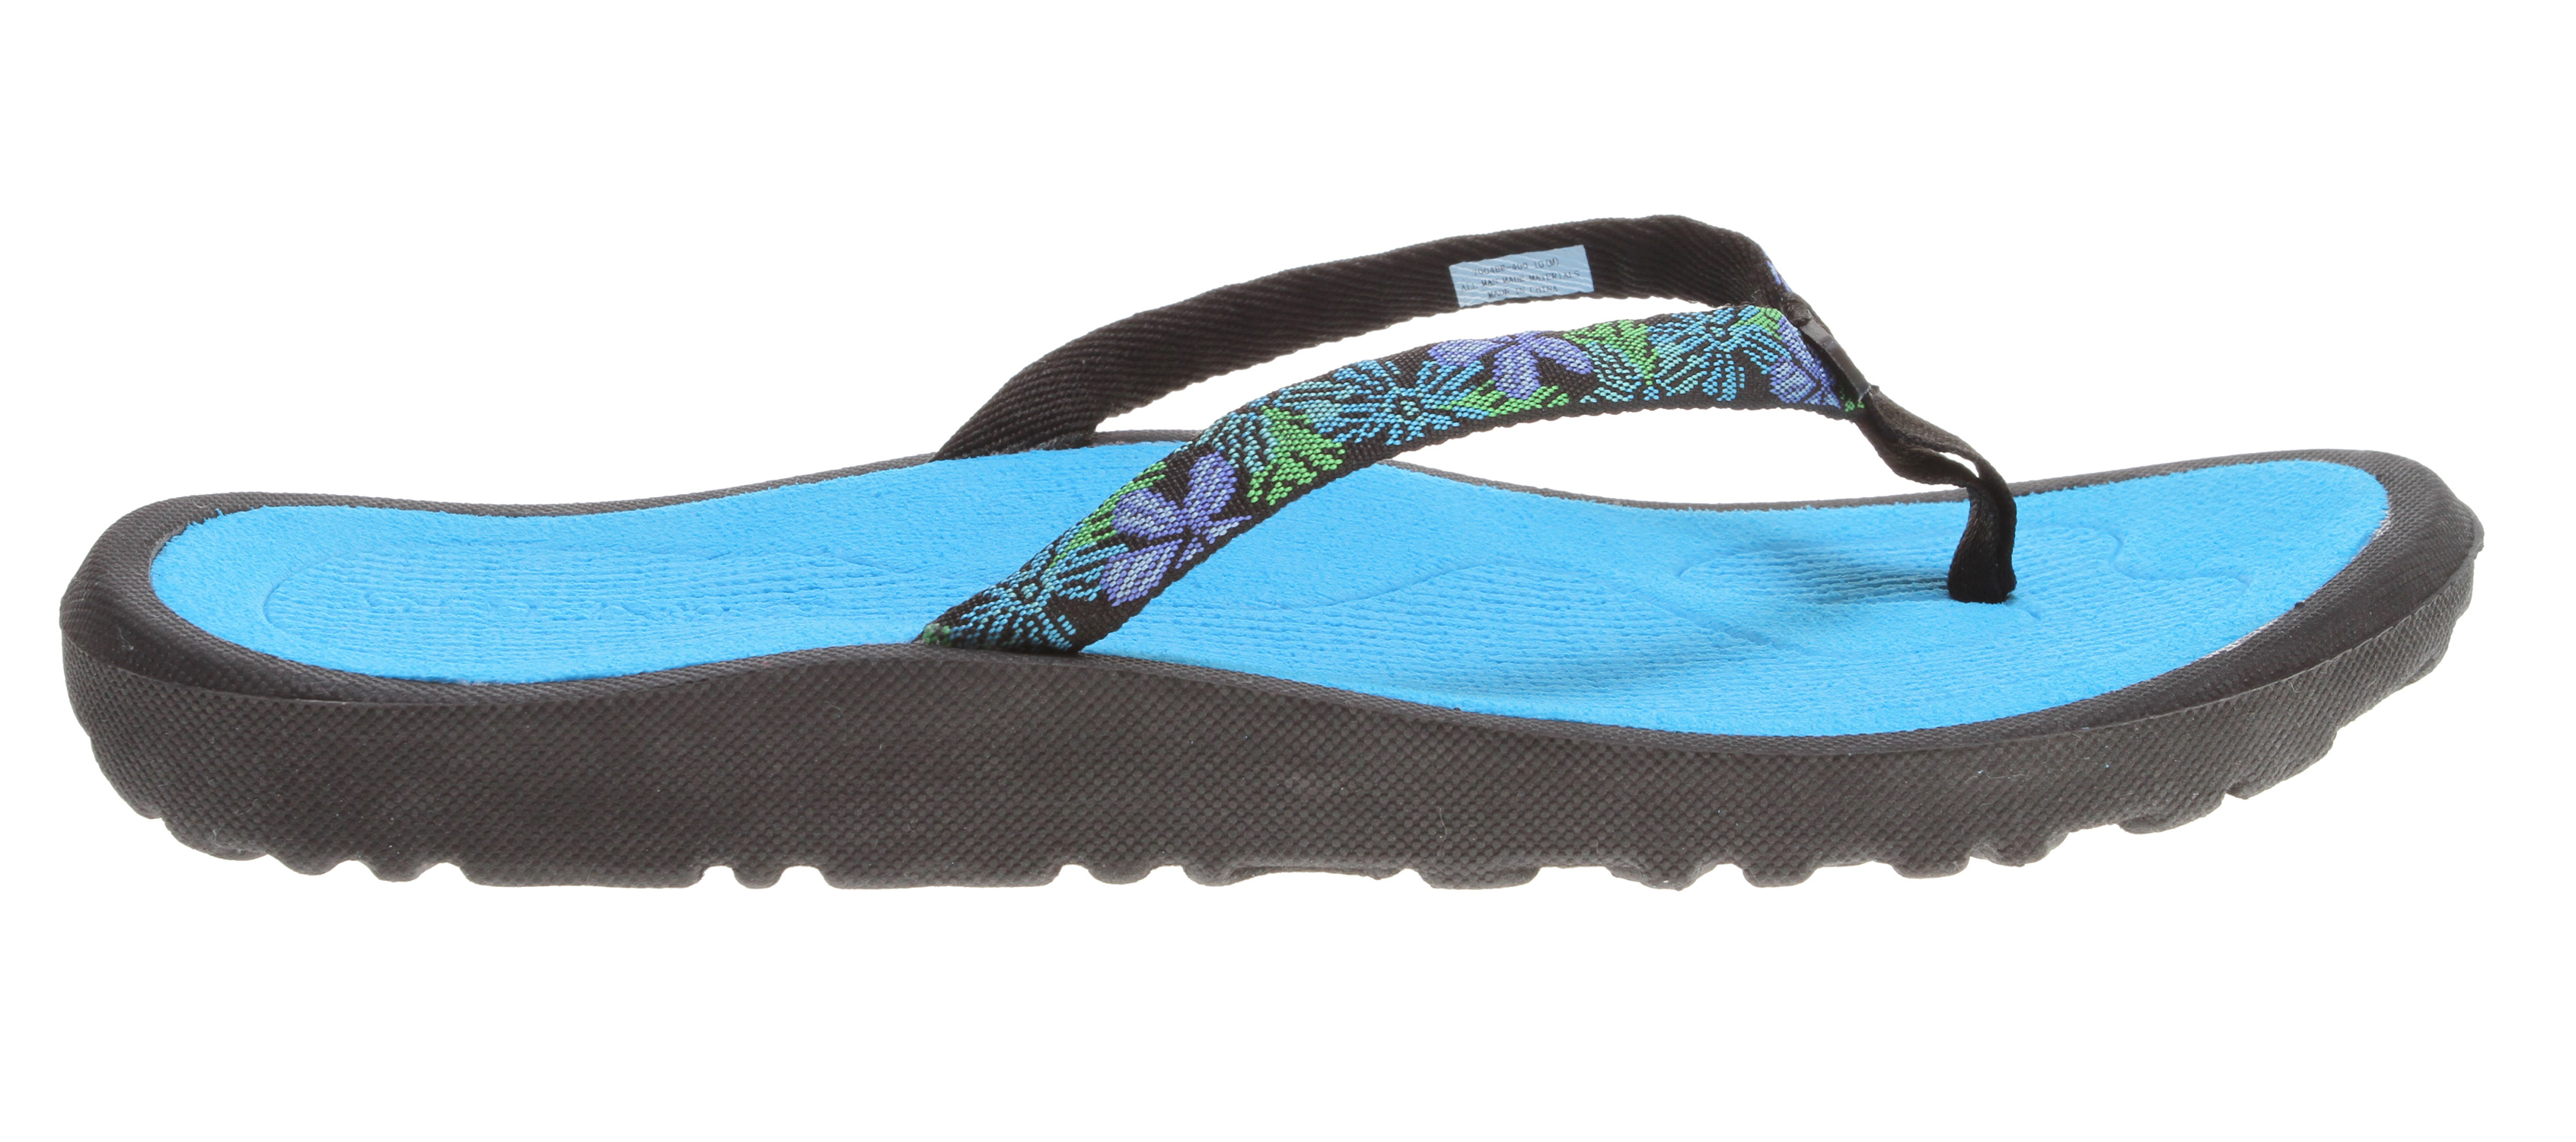 Surf Key Features of the Rafters Breeze Sandals: Ultra lightweight with more arch support and heel cushioning Nylon upper that's soft to the foot, longer wearing BOUNCE footbed allows for great resiliency in every step - $15.95